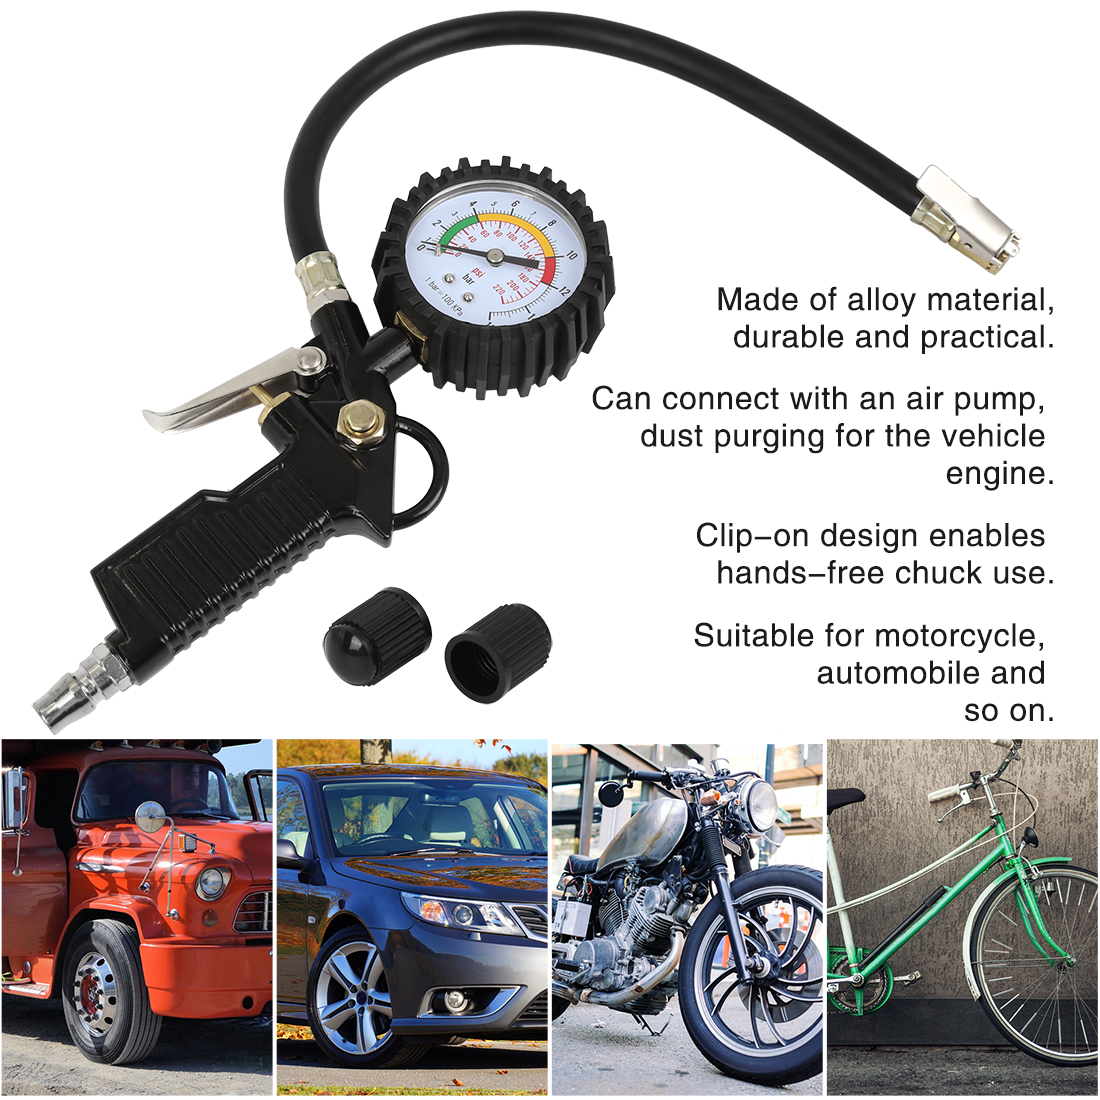 X AUTOHAUX 3 to 200PSI Portable Digital Tire Pressure Gauges Air Chuck Inflator with 4 Tire Valve Caps Universal Fit for Car Motorcycle Bike